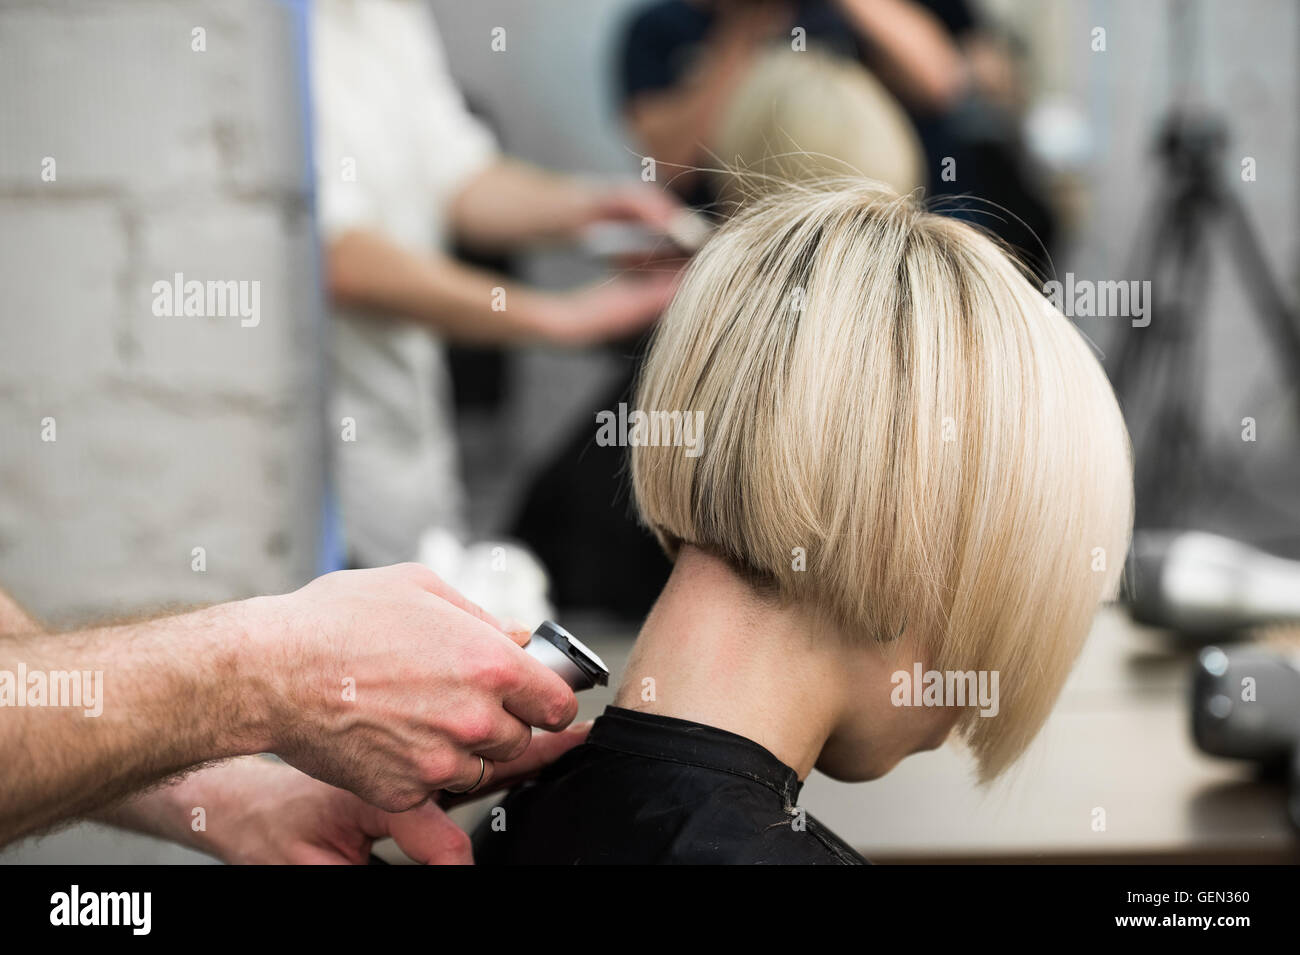 Salon Cut In Hairdresser Cutting Client 39s Hair In Salon With Electric